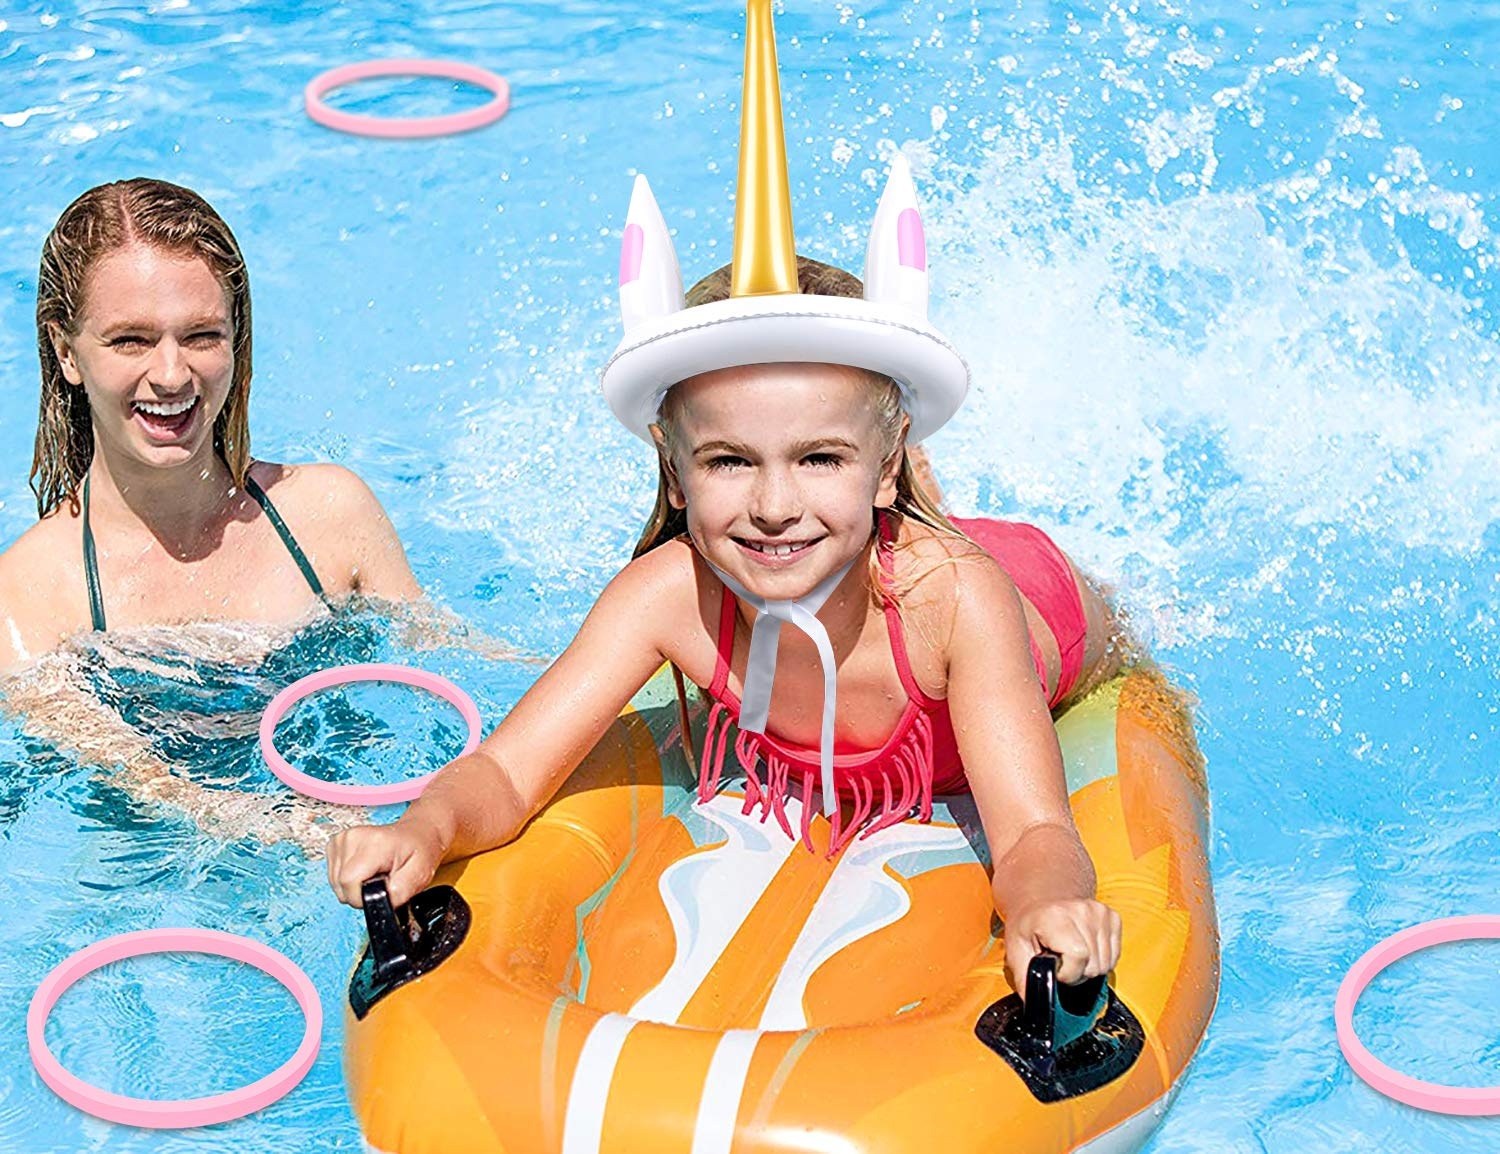 luck sea Unicorn Inflatable Ring Toss Pool Party Games Toys Floats Luau Supplies Favors for Teens Adults 8